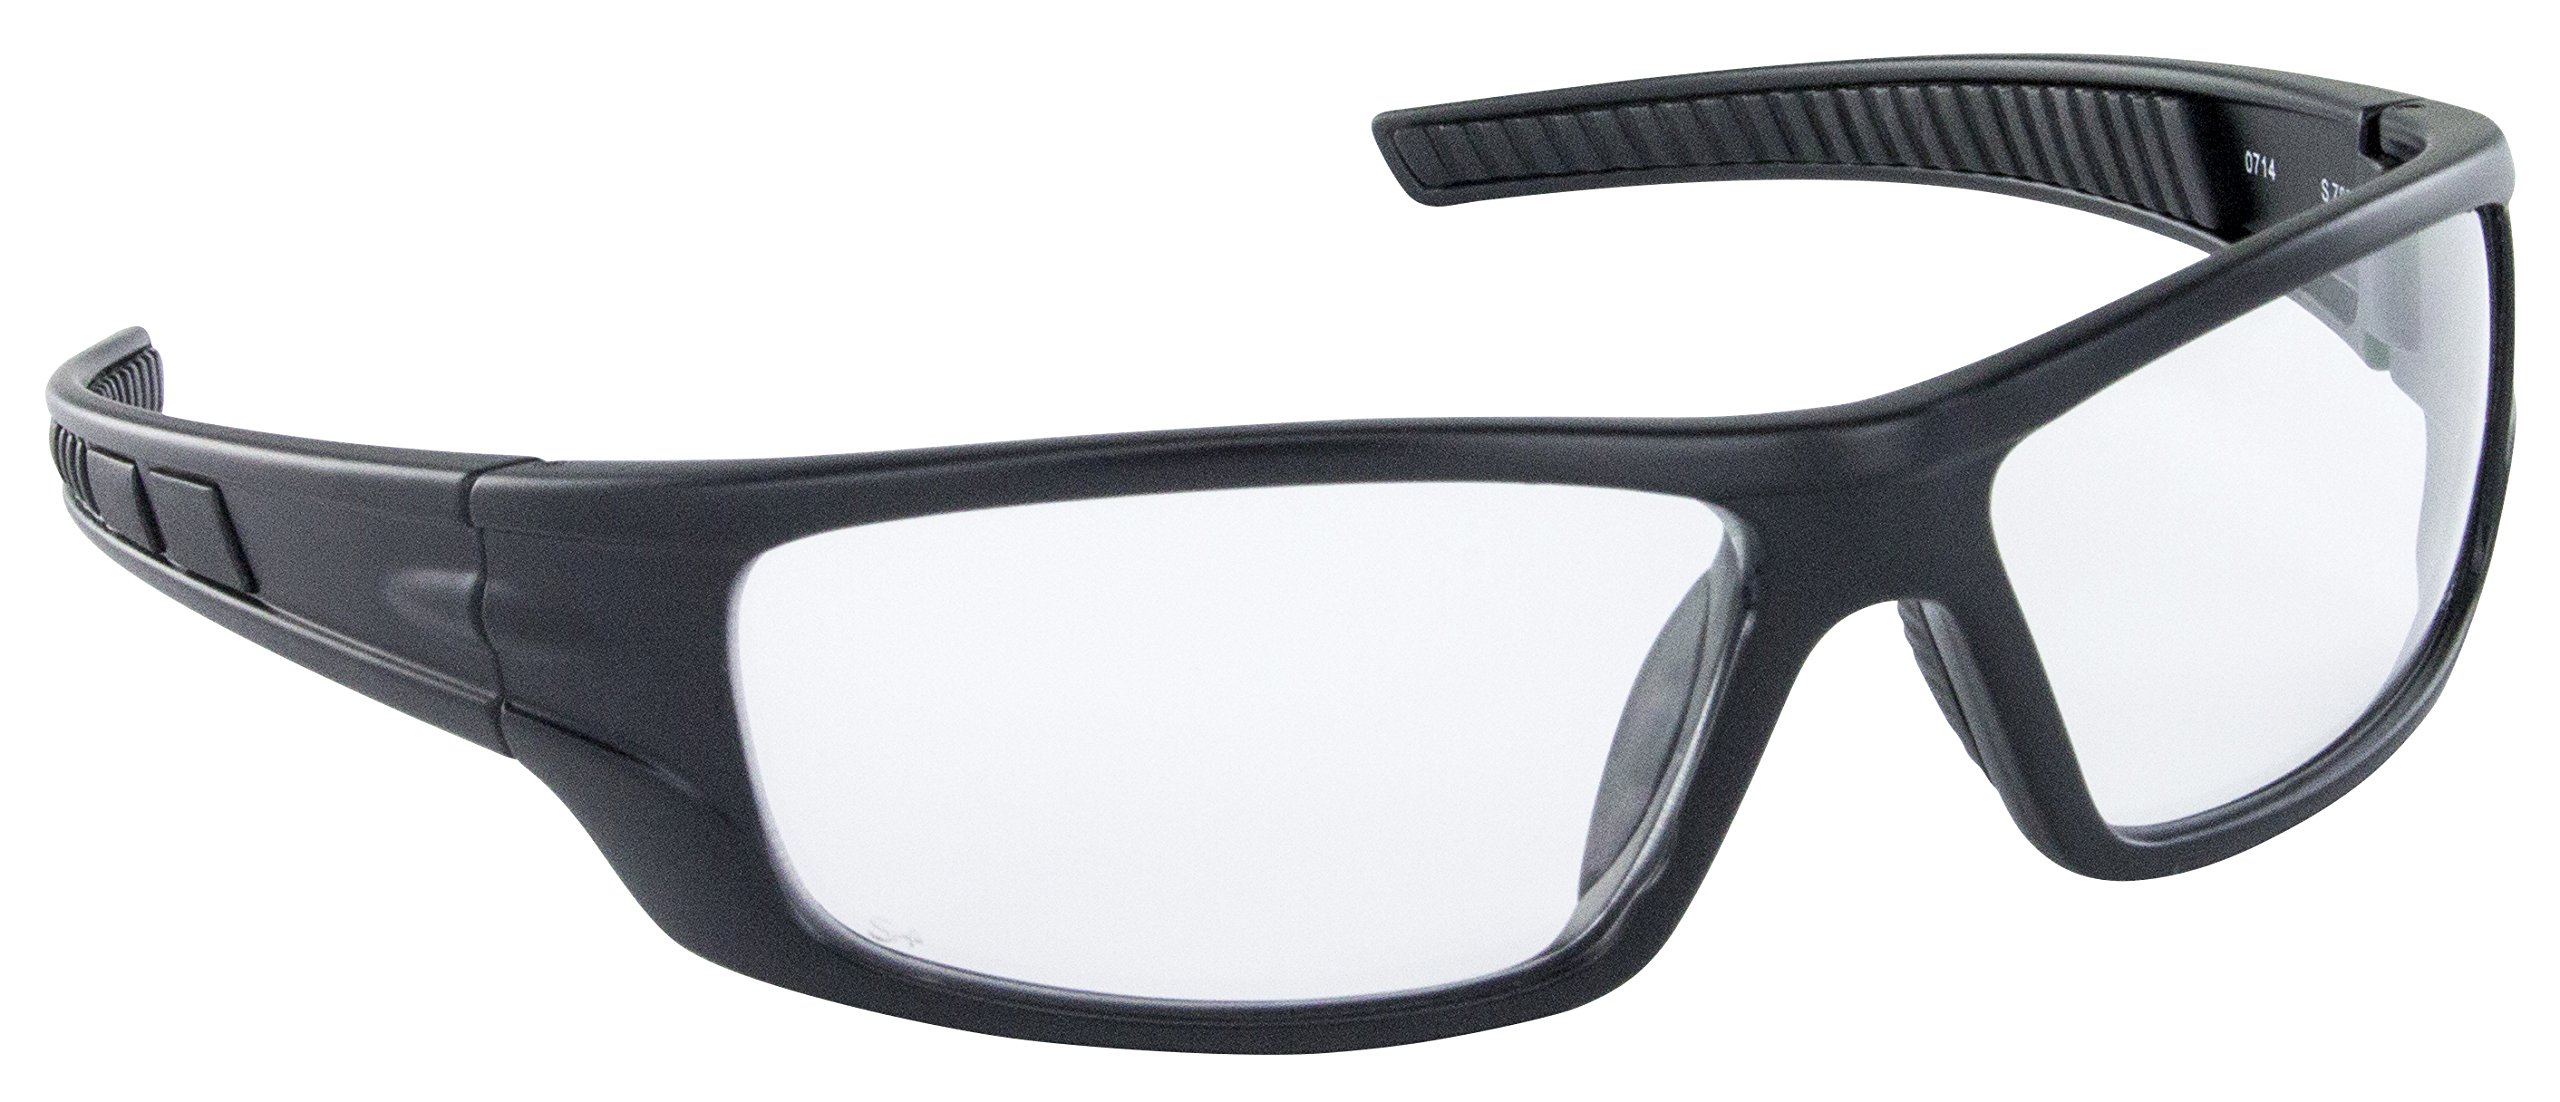 SAS Safety 5510-01 VX9 High-Impact Polycarbonate Lens Safety Glasses with Clear Lens, Black